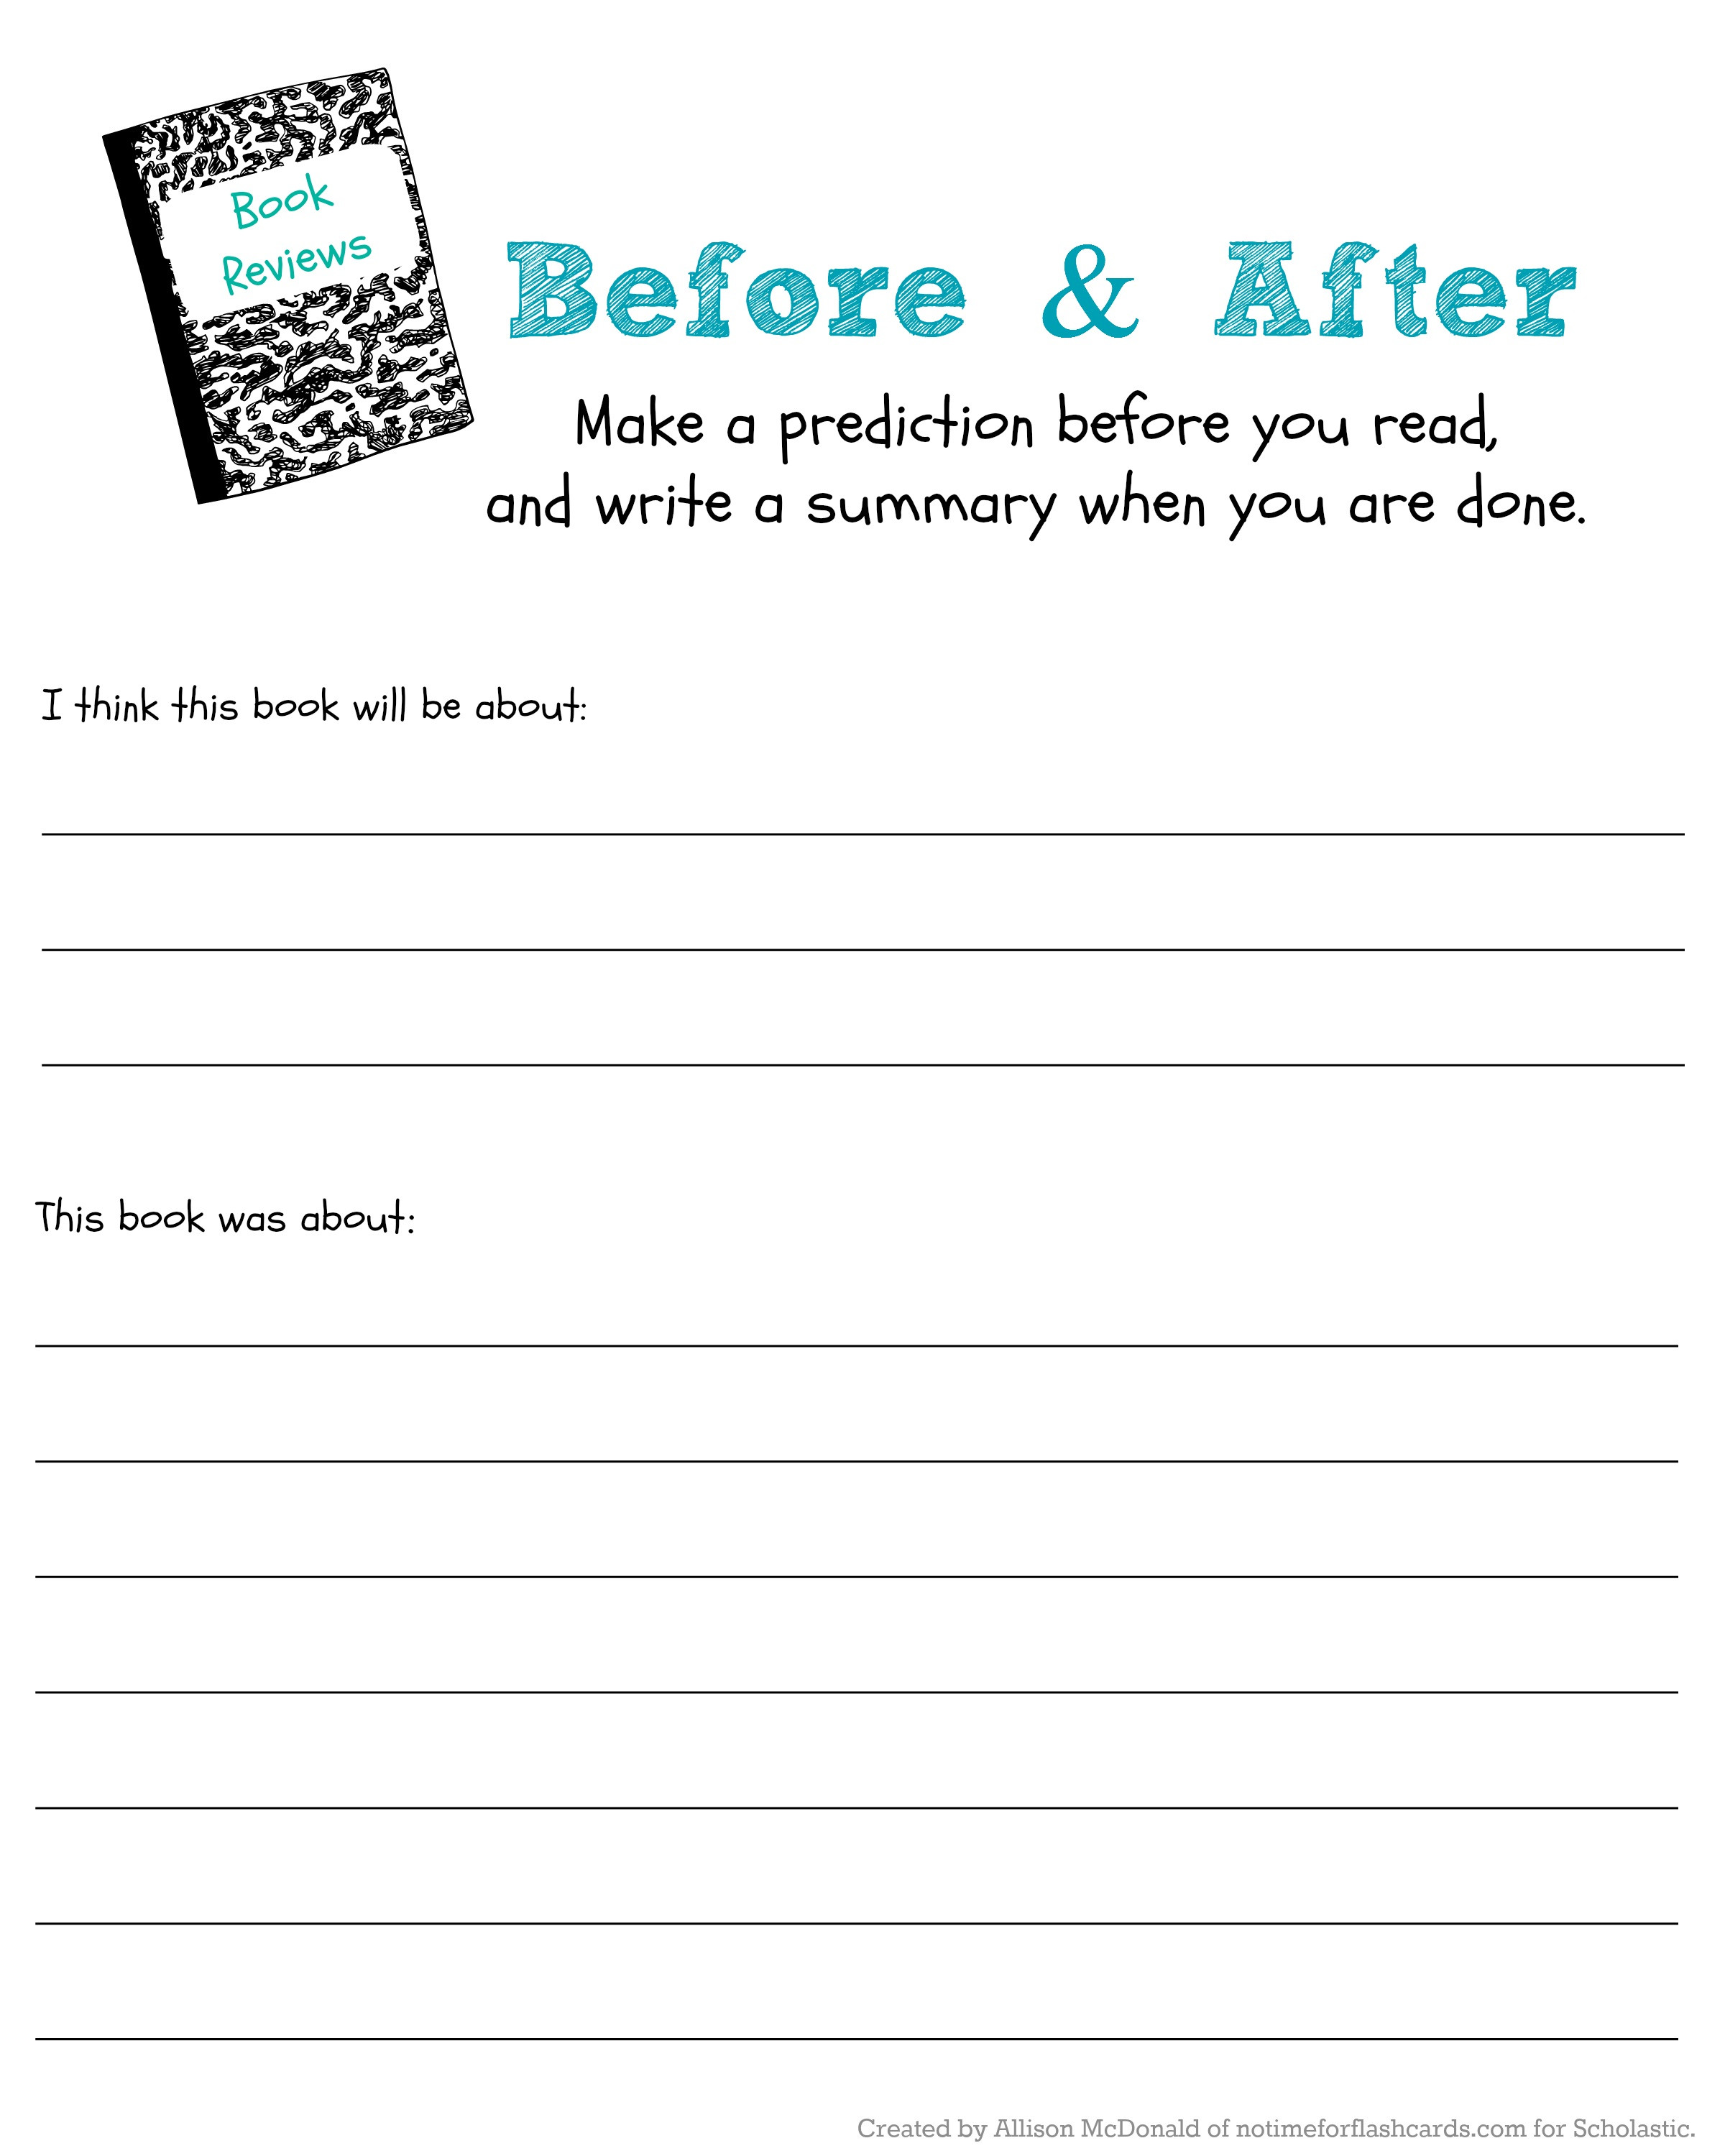 Prediction Worksheets for 2nd Grade Judge A Book by Its Cover to Predict & Read